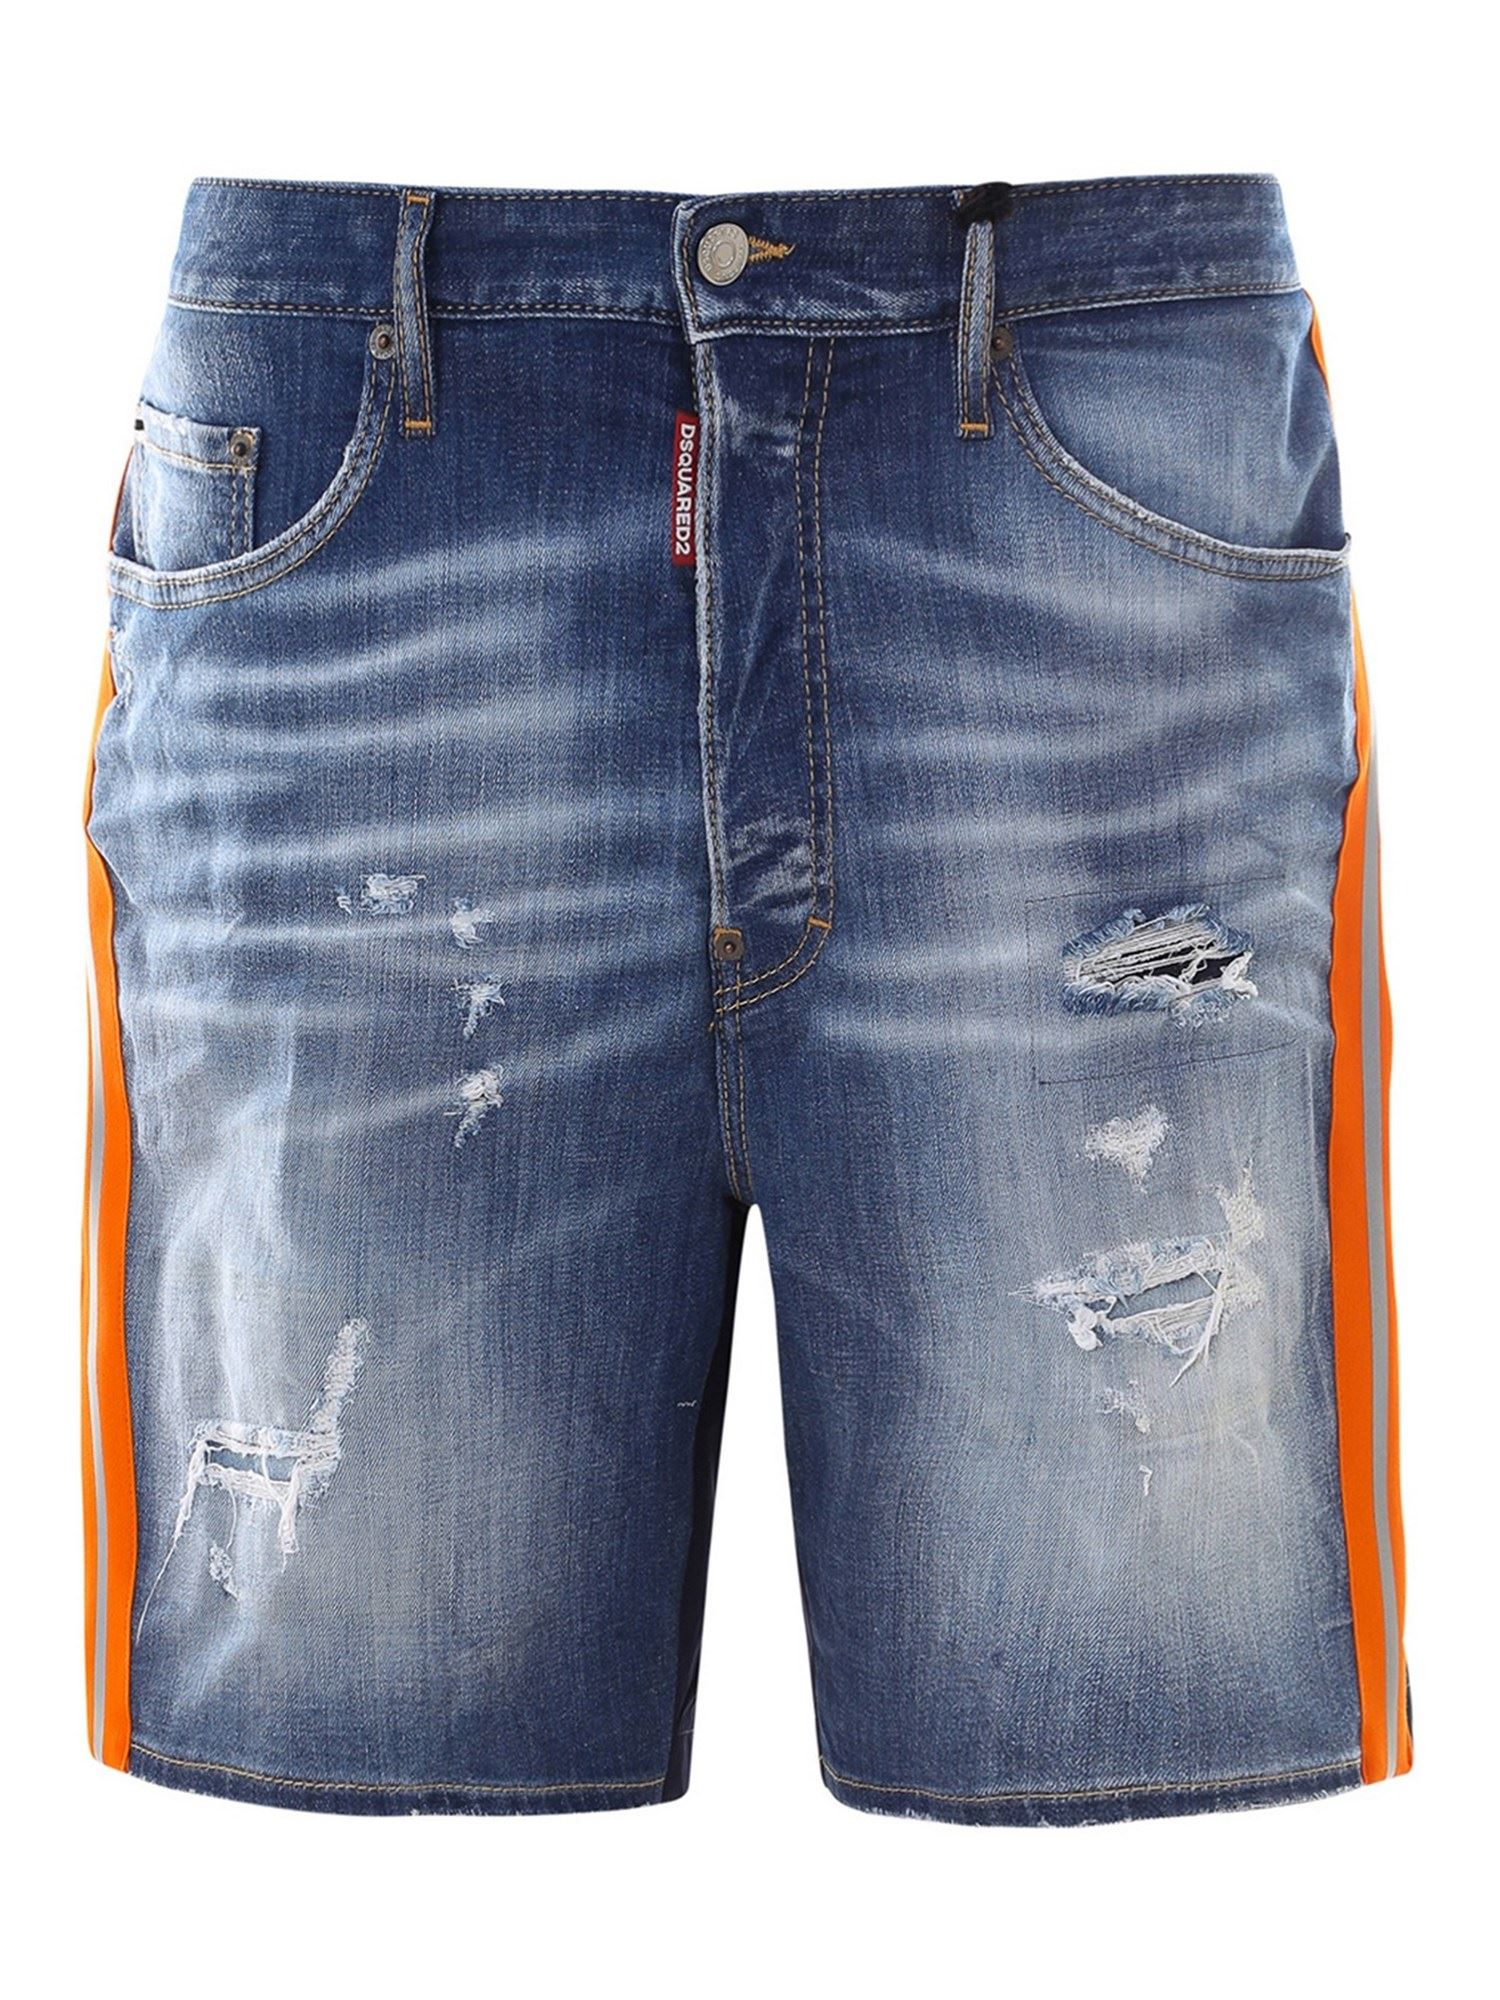 Dsquared2 Denims DENIM AND TECHNICAL FABRIC SHORTS IN BLUE